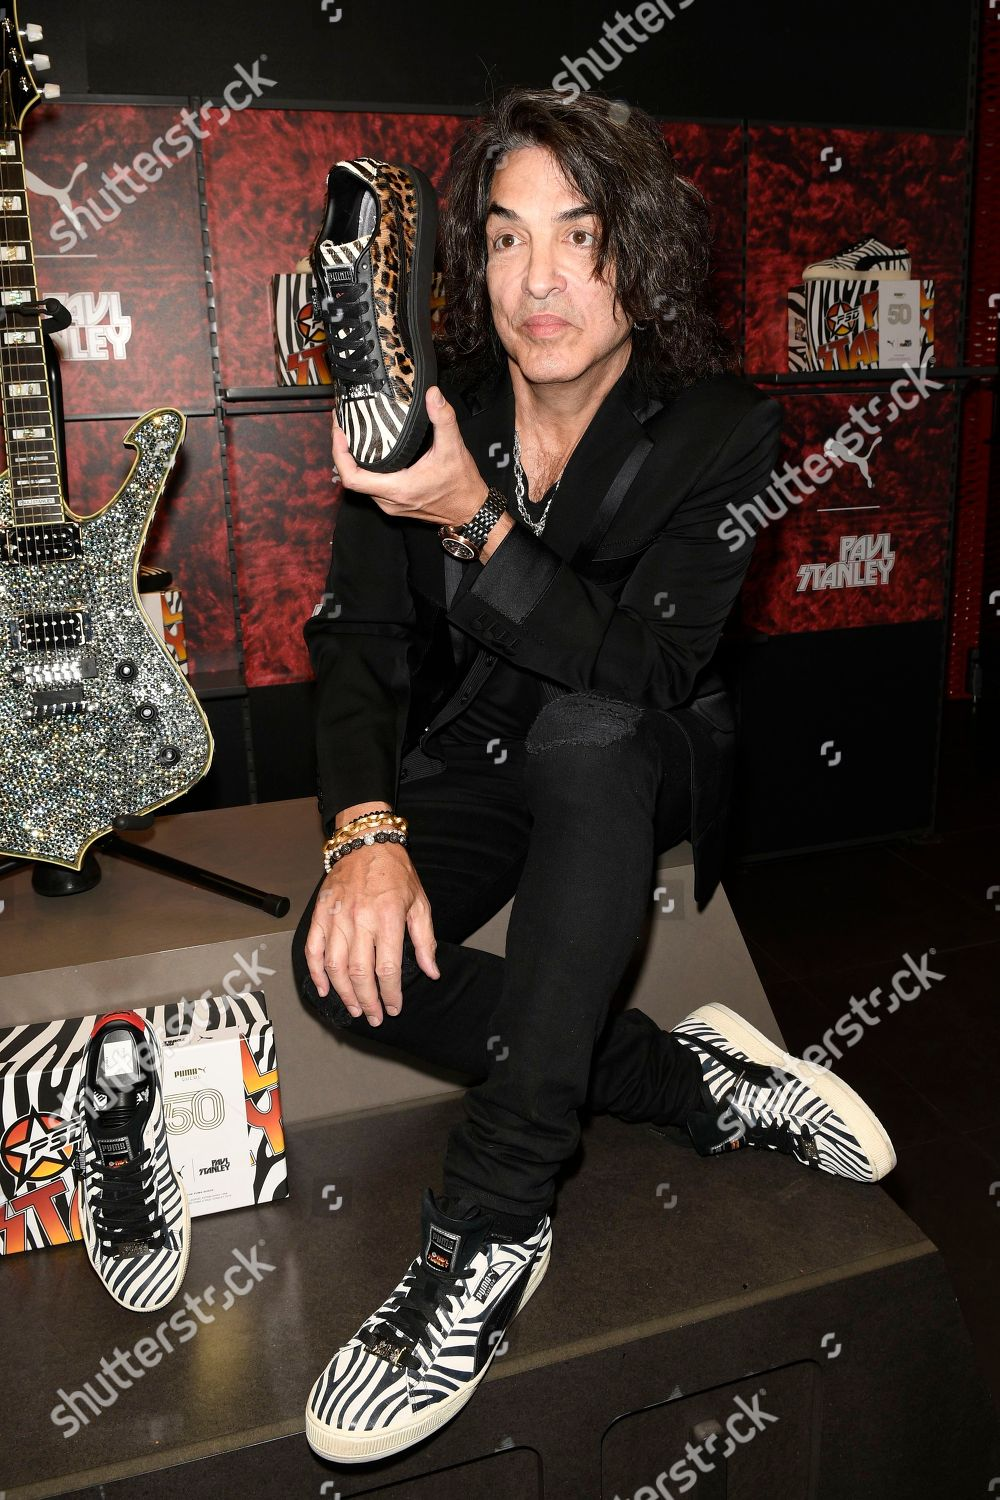 online store eb697 7e147 Paul Stanley Editorial Stock Photo - Stock Image | Shutterstock